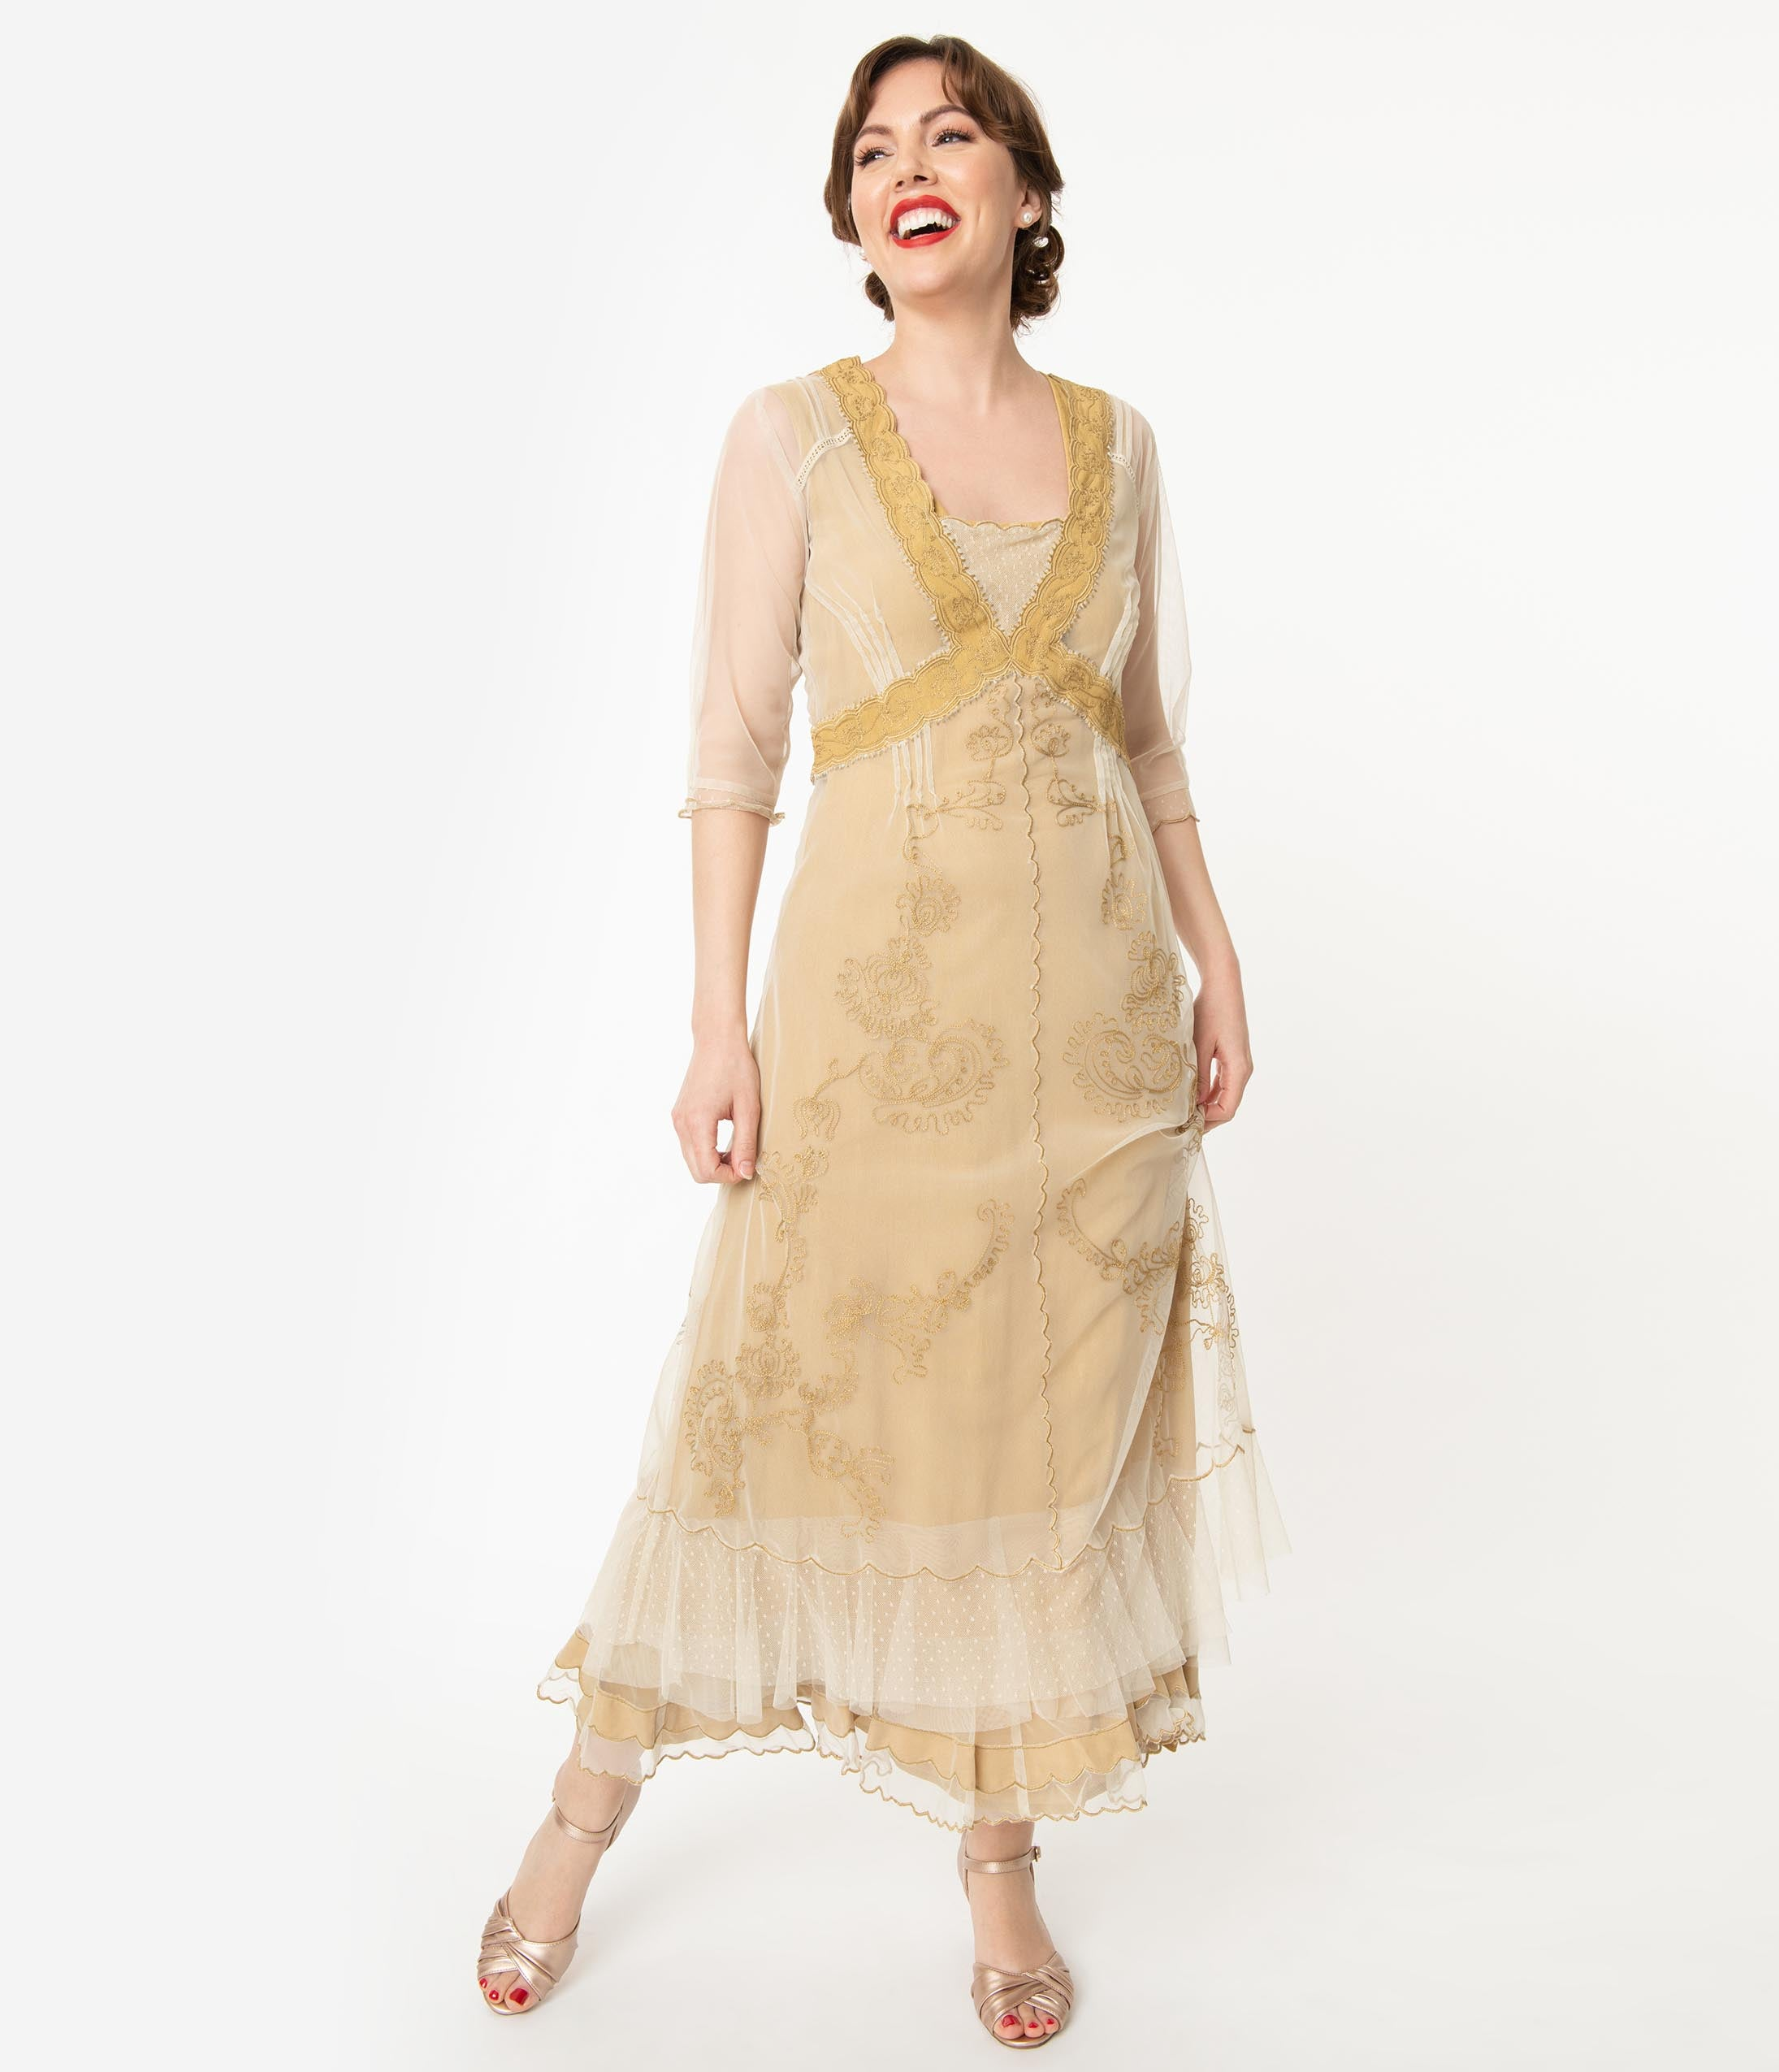 Modest, Mature, Mrs. Vintage Dresses – 20s, 30s, 40s, 50s, 60s Vintage Style Antique Ivory Mesh Embroidered Edwardian Flapper Dress $308.00 AT vintagedancer.com